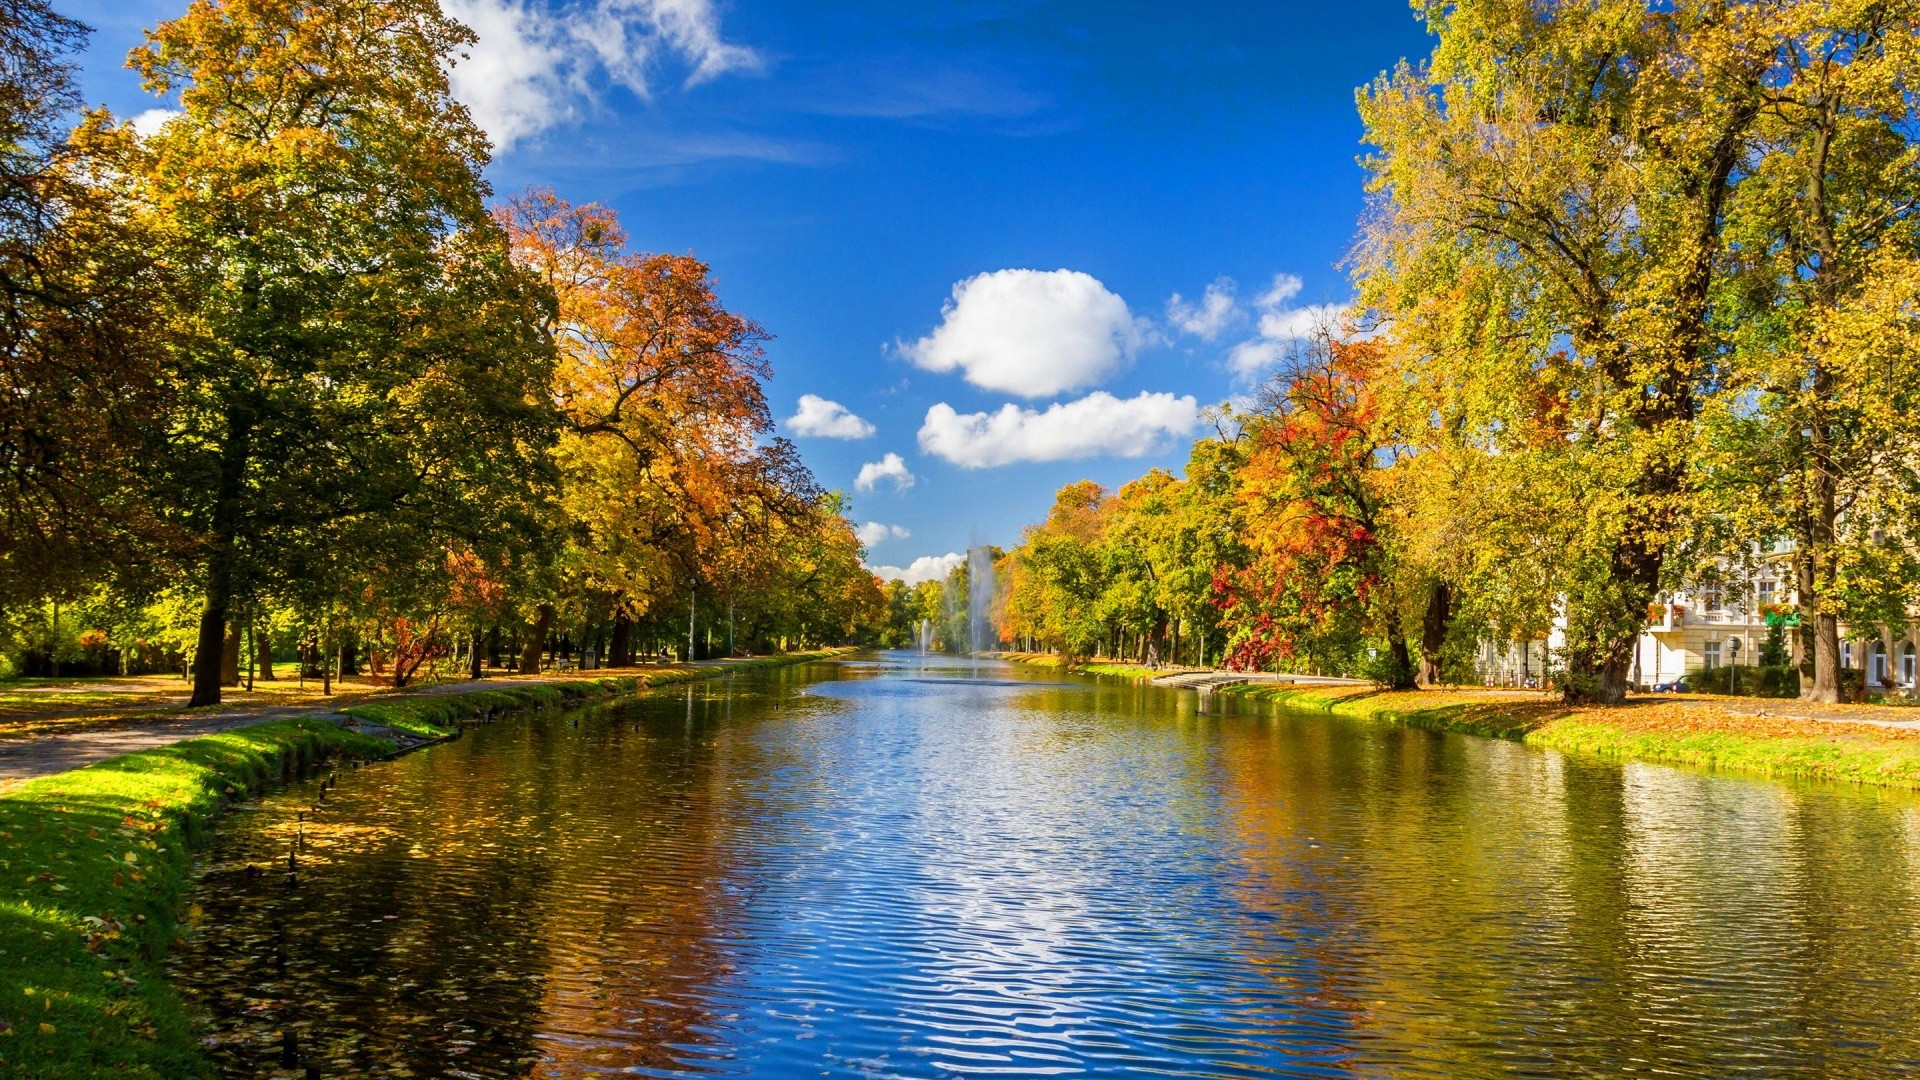 1920x1080 0  HD Autumn Wallpapers  River park autumn Wallpaper